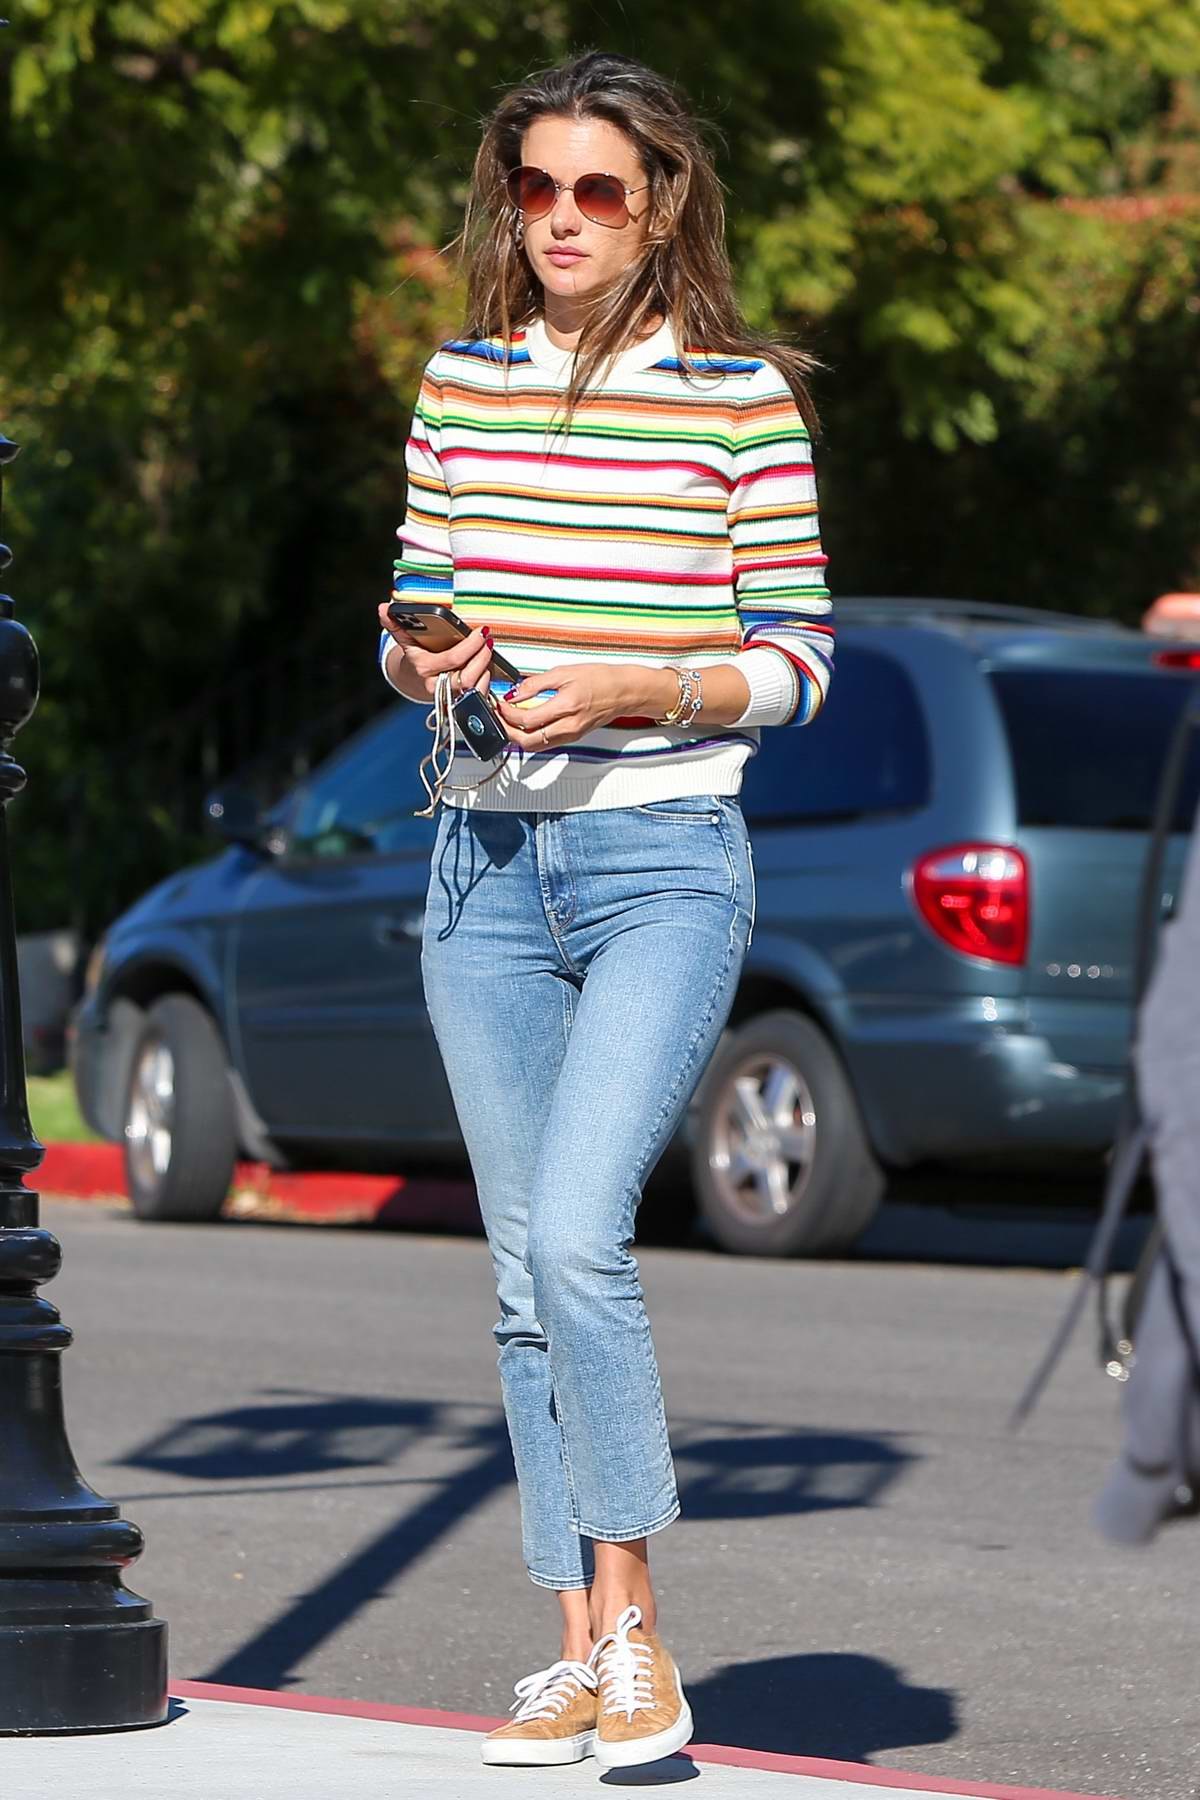 Alessandra Ambrosio looks casual and relaxed as she enjoys an afternoon stroll in Los Angeles